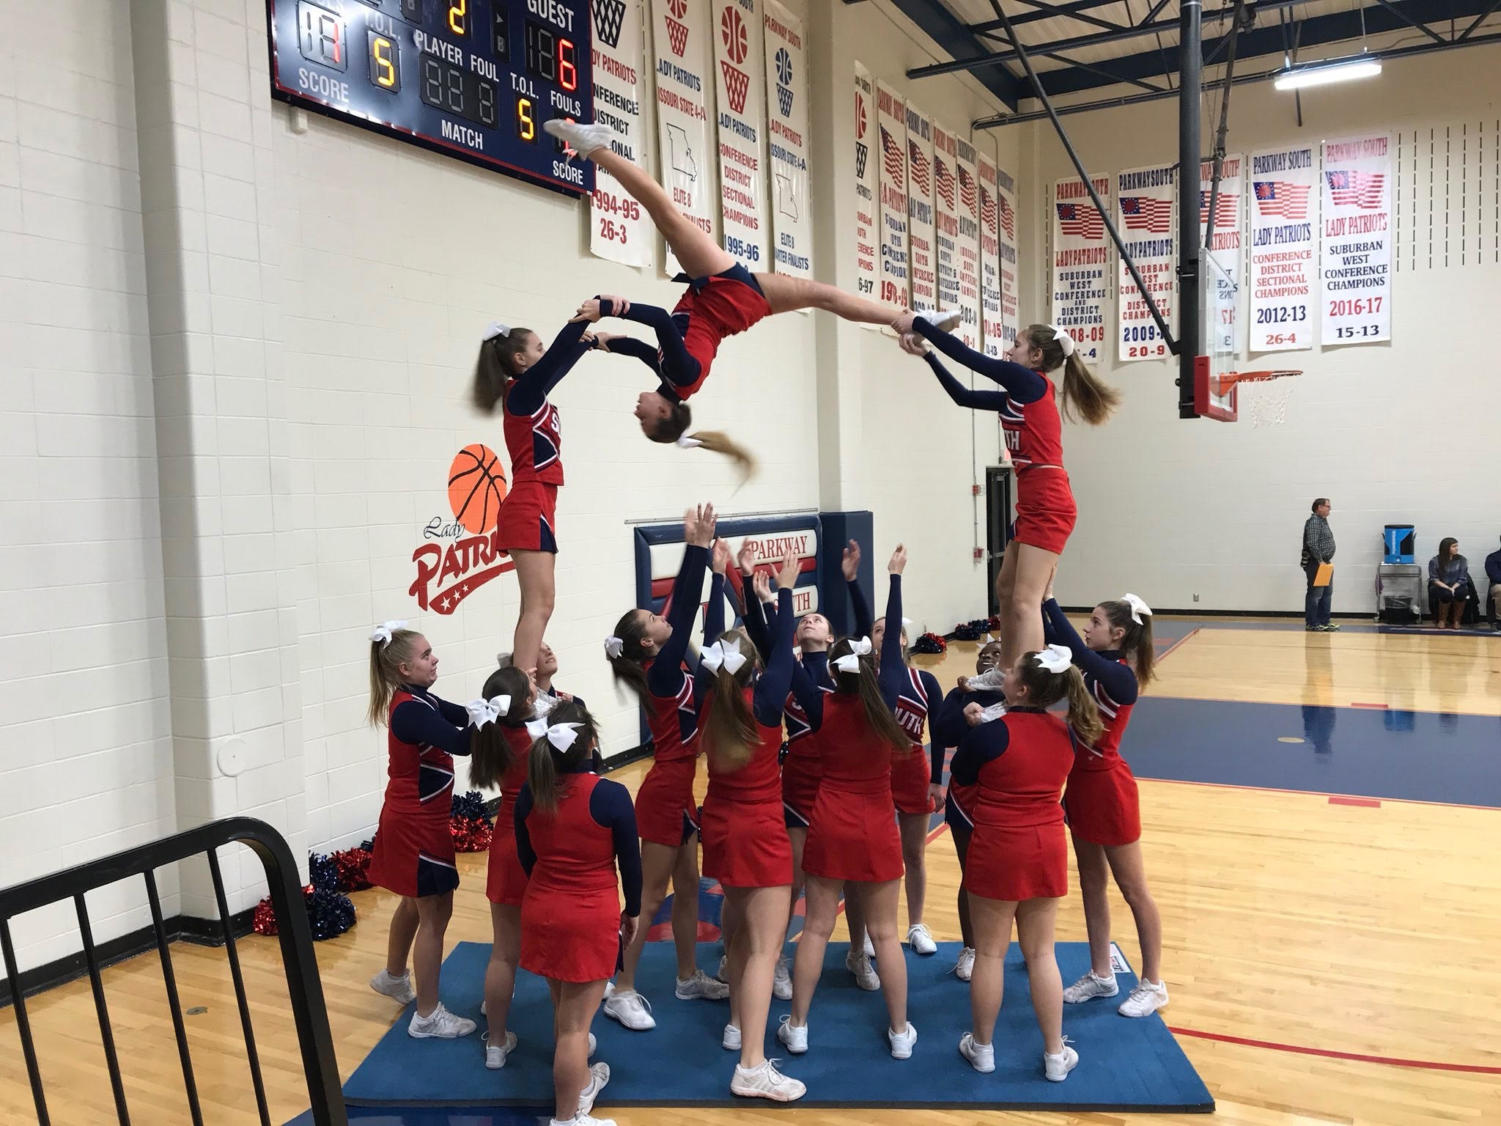 The JV cheerleading squad does its